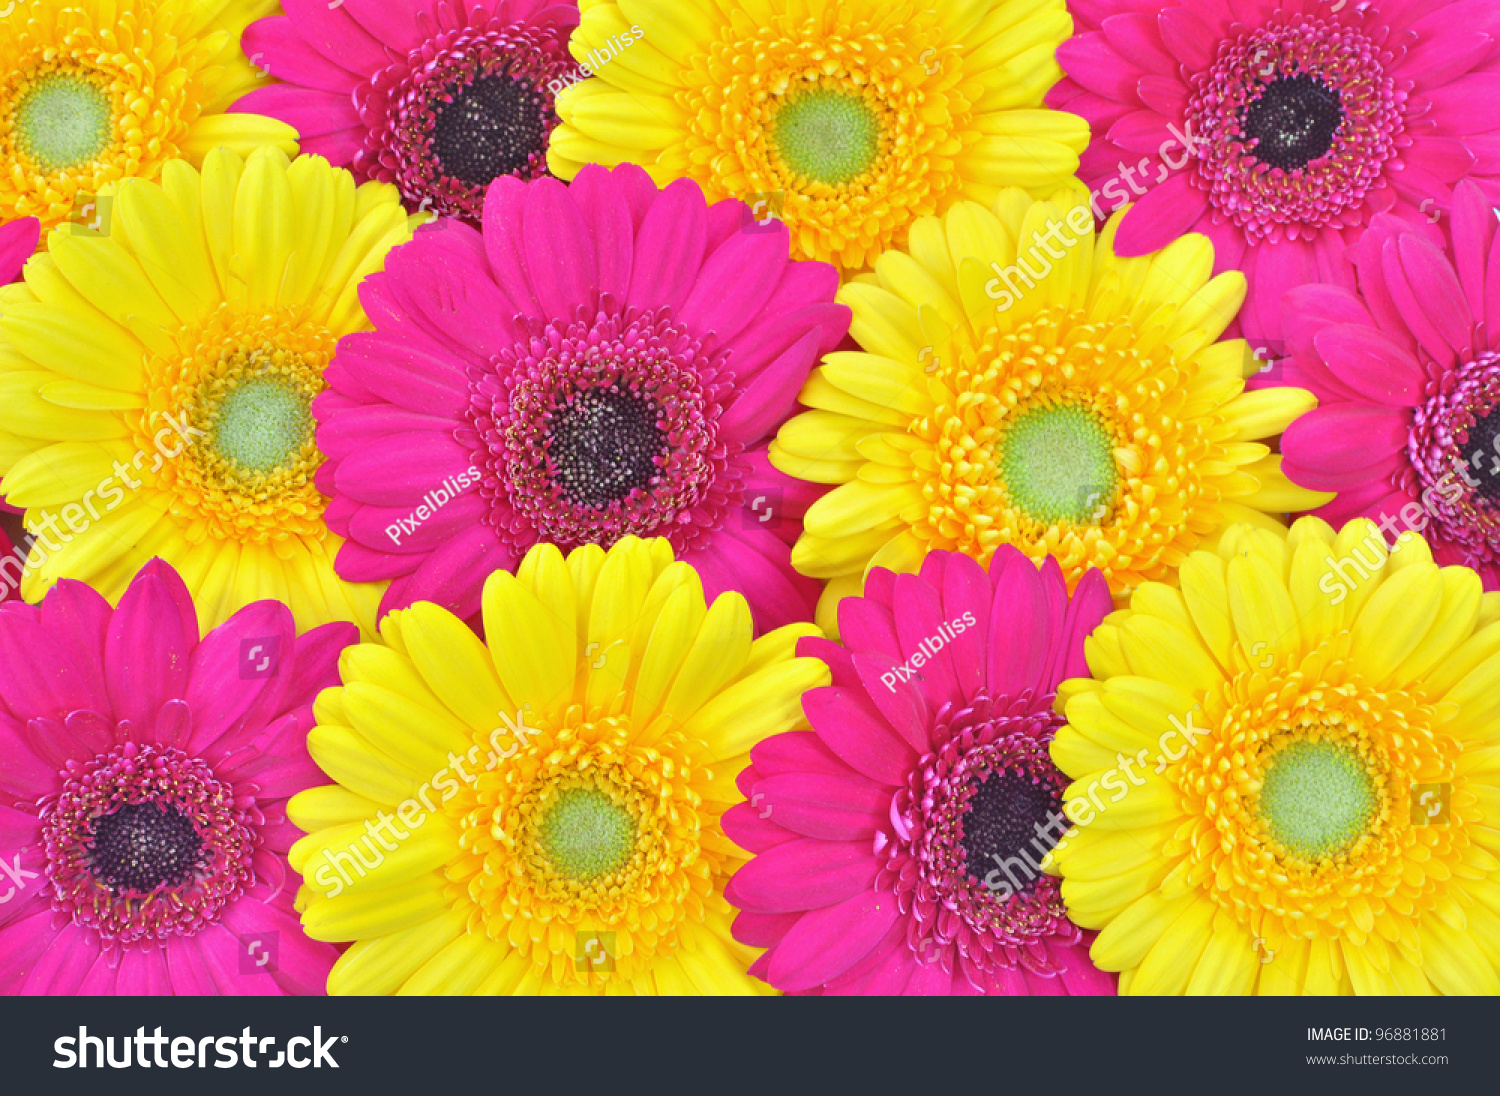 pink yellow flowers background stock photo 96881881